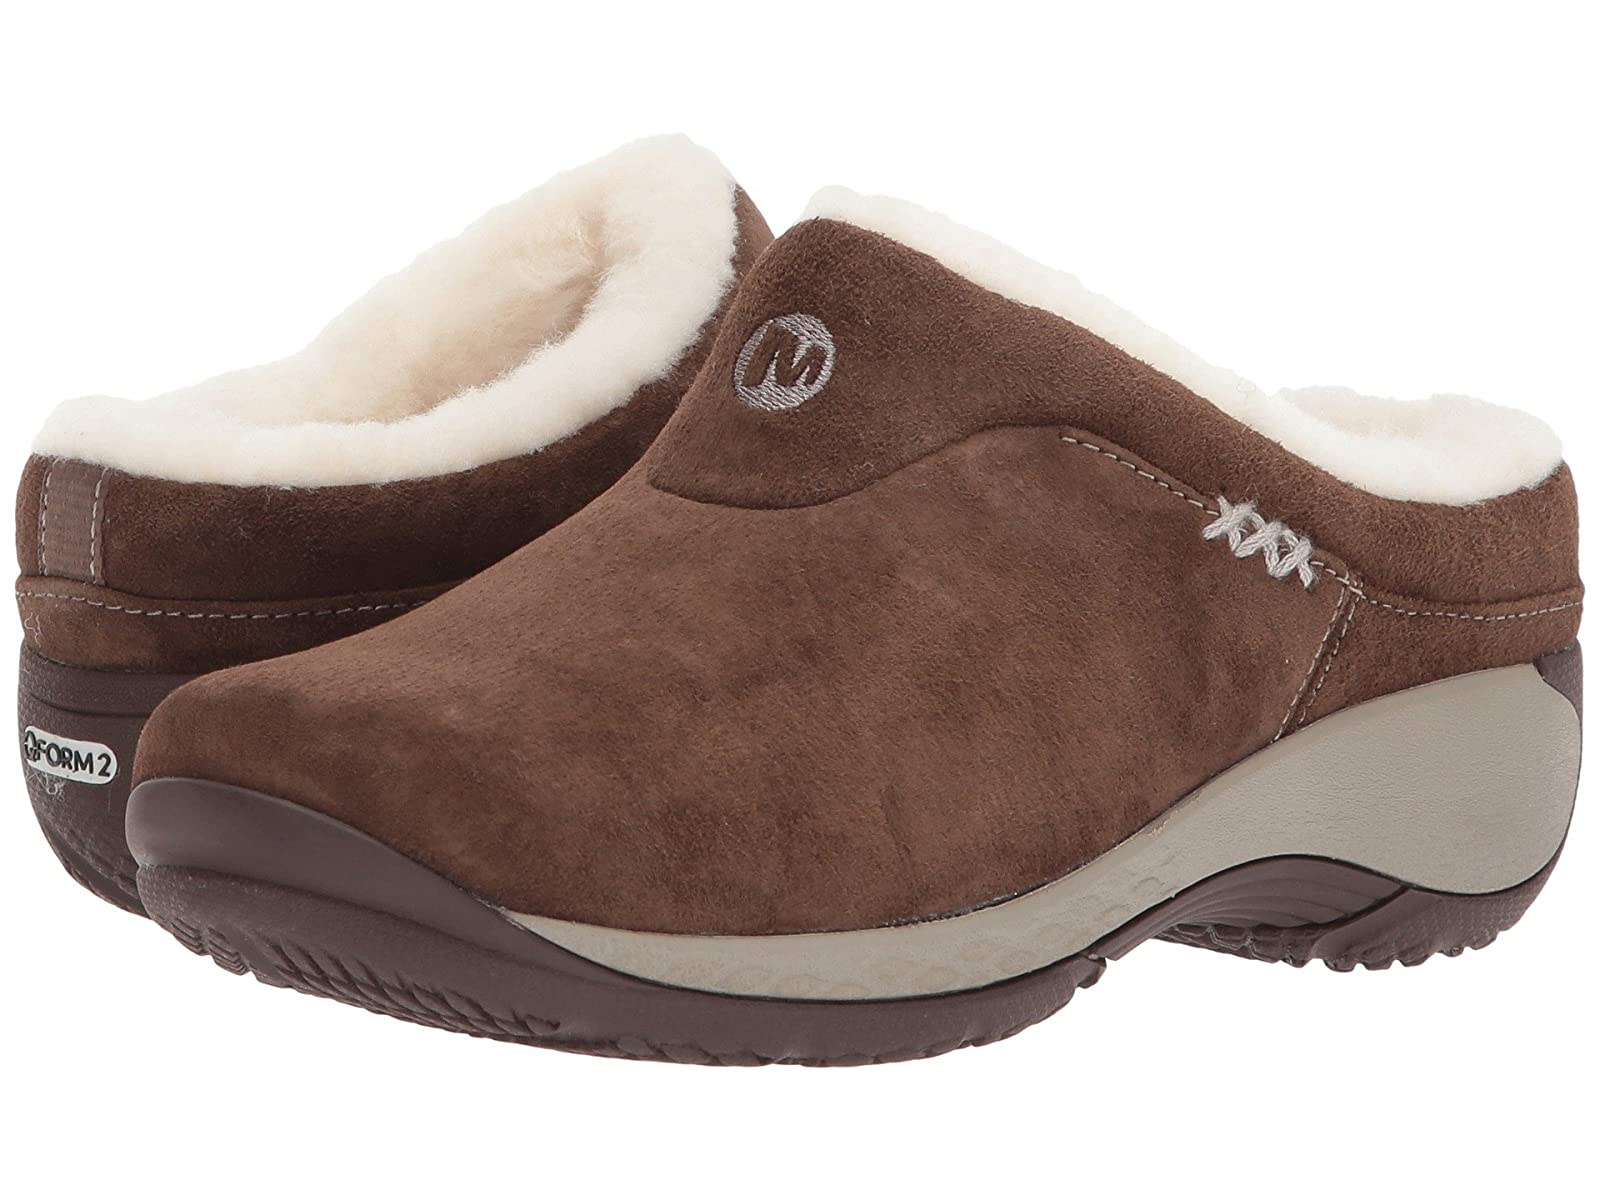 Mr/Ms:Merrell Encore Q2 Ice:All-round Ice:All-round Q2 The specification 0ccaa0